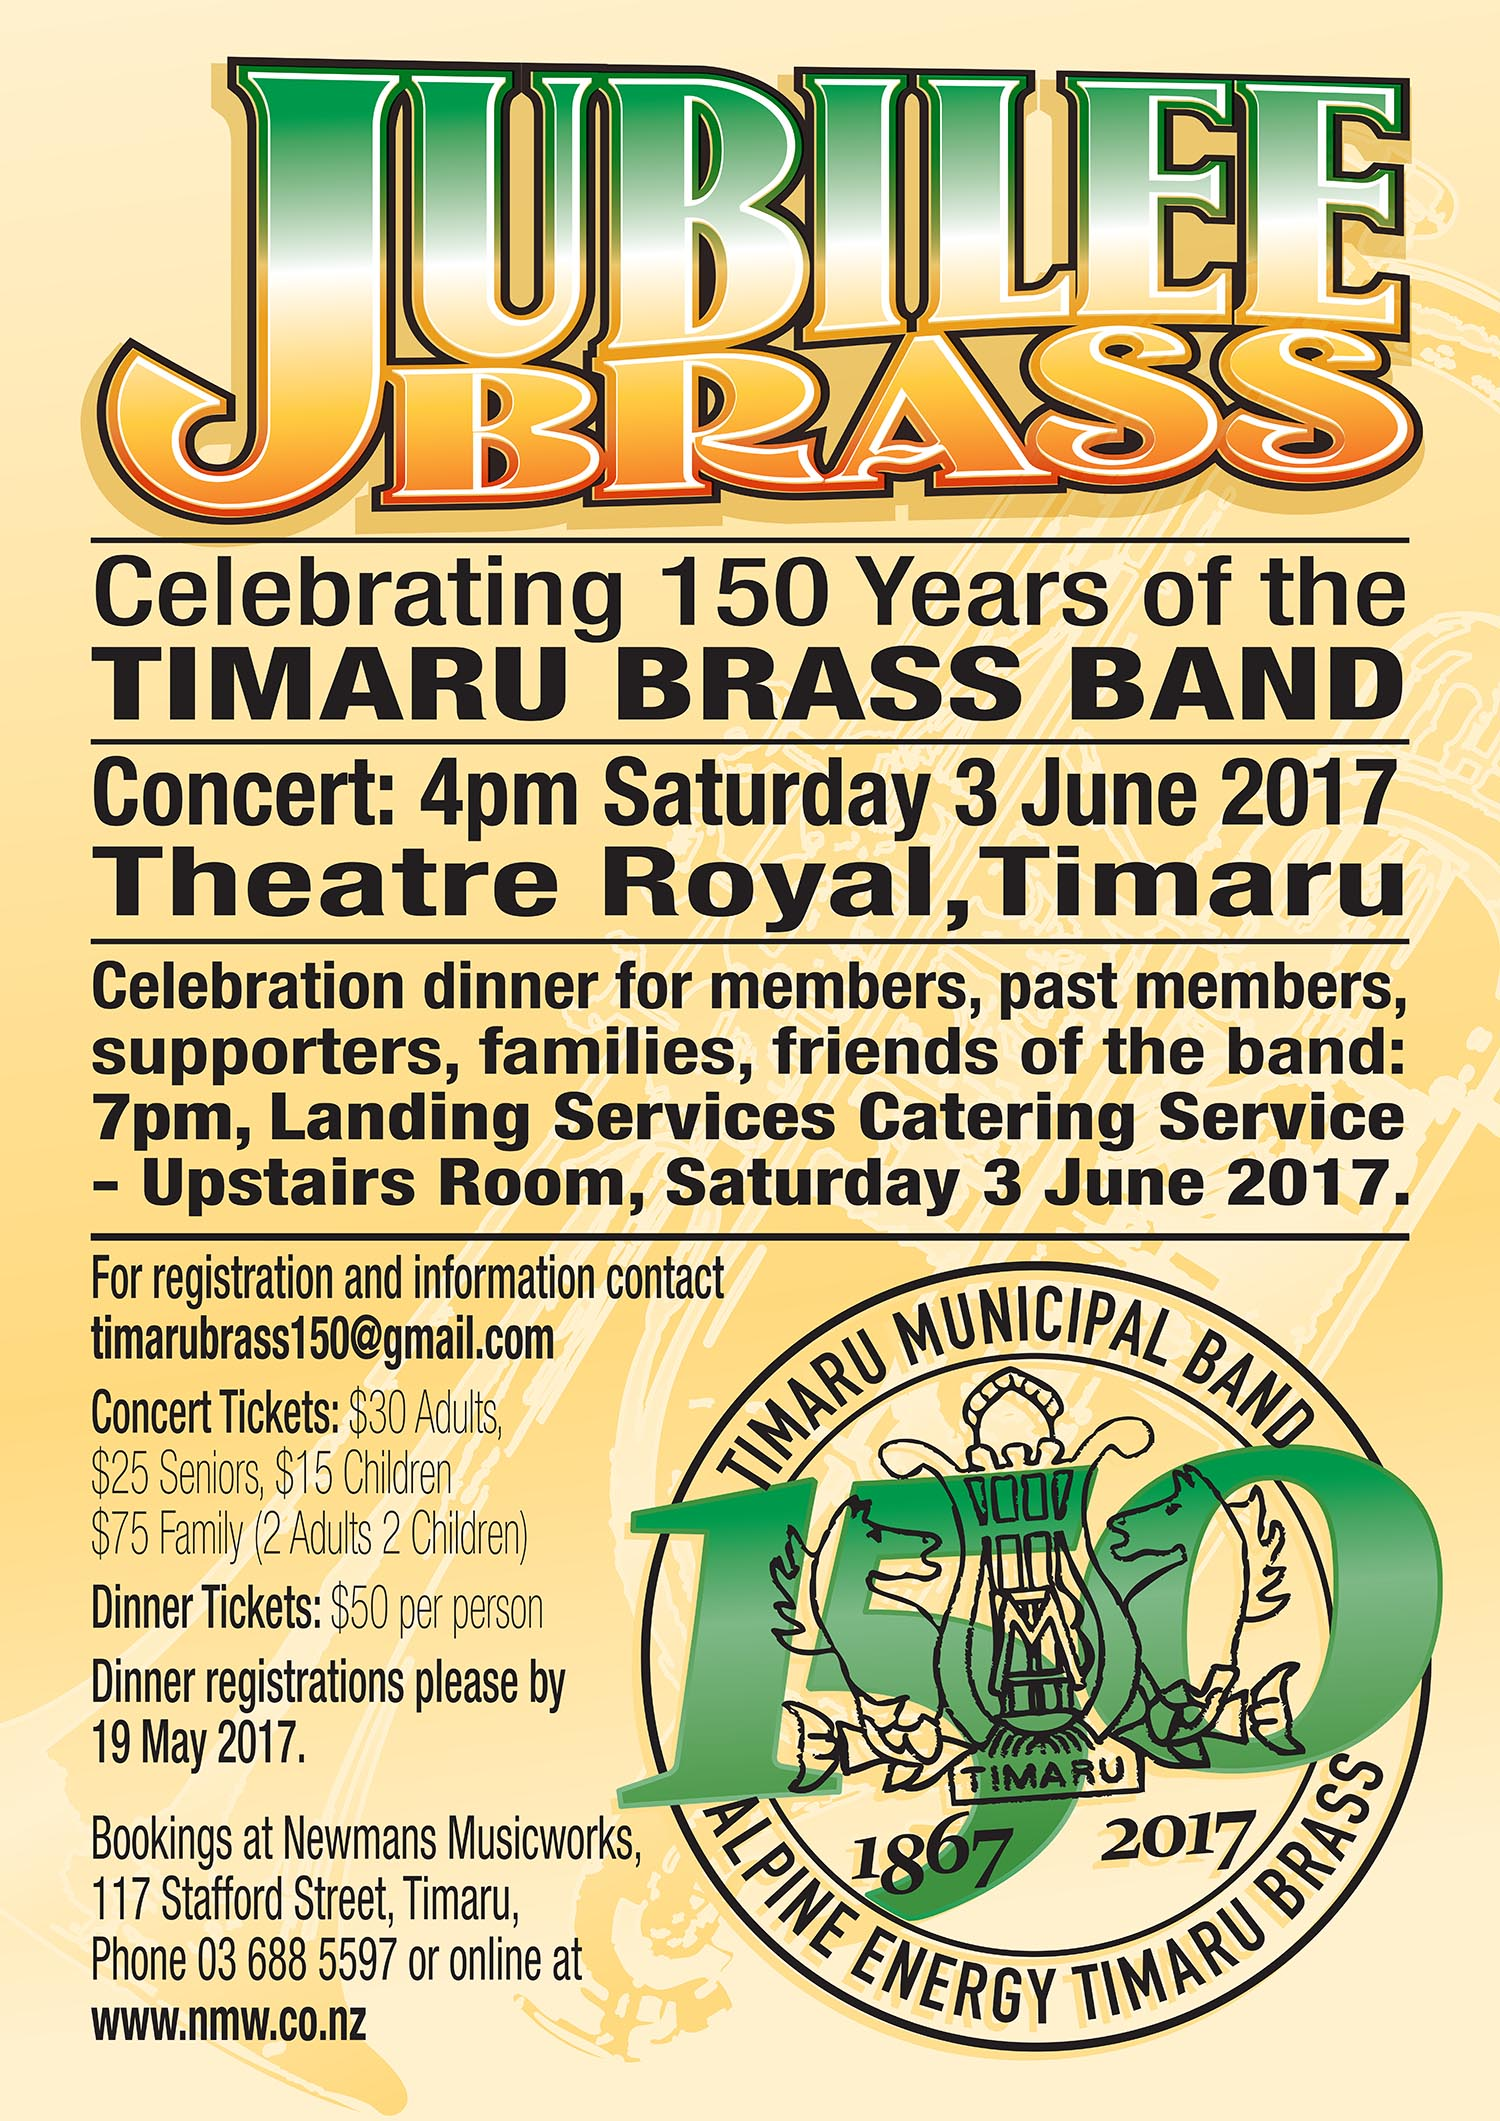 Jubilee Brass - Celebrating 150 Years of the Timaru Brass Band